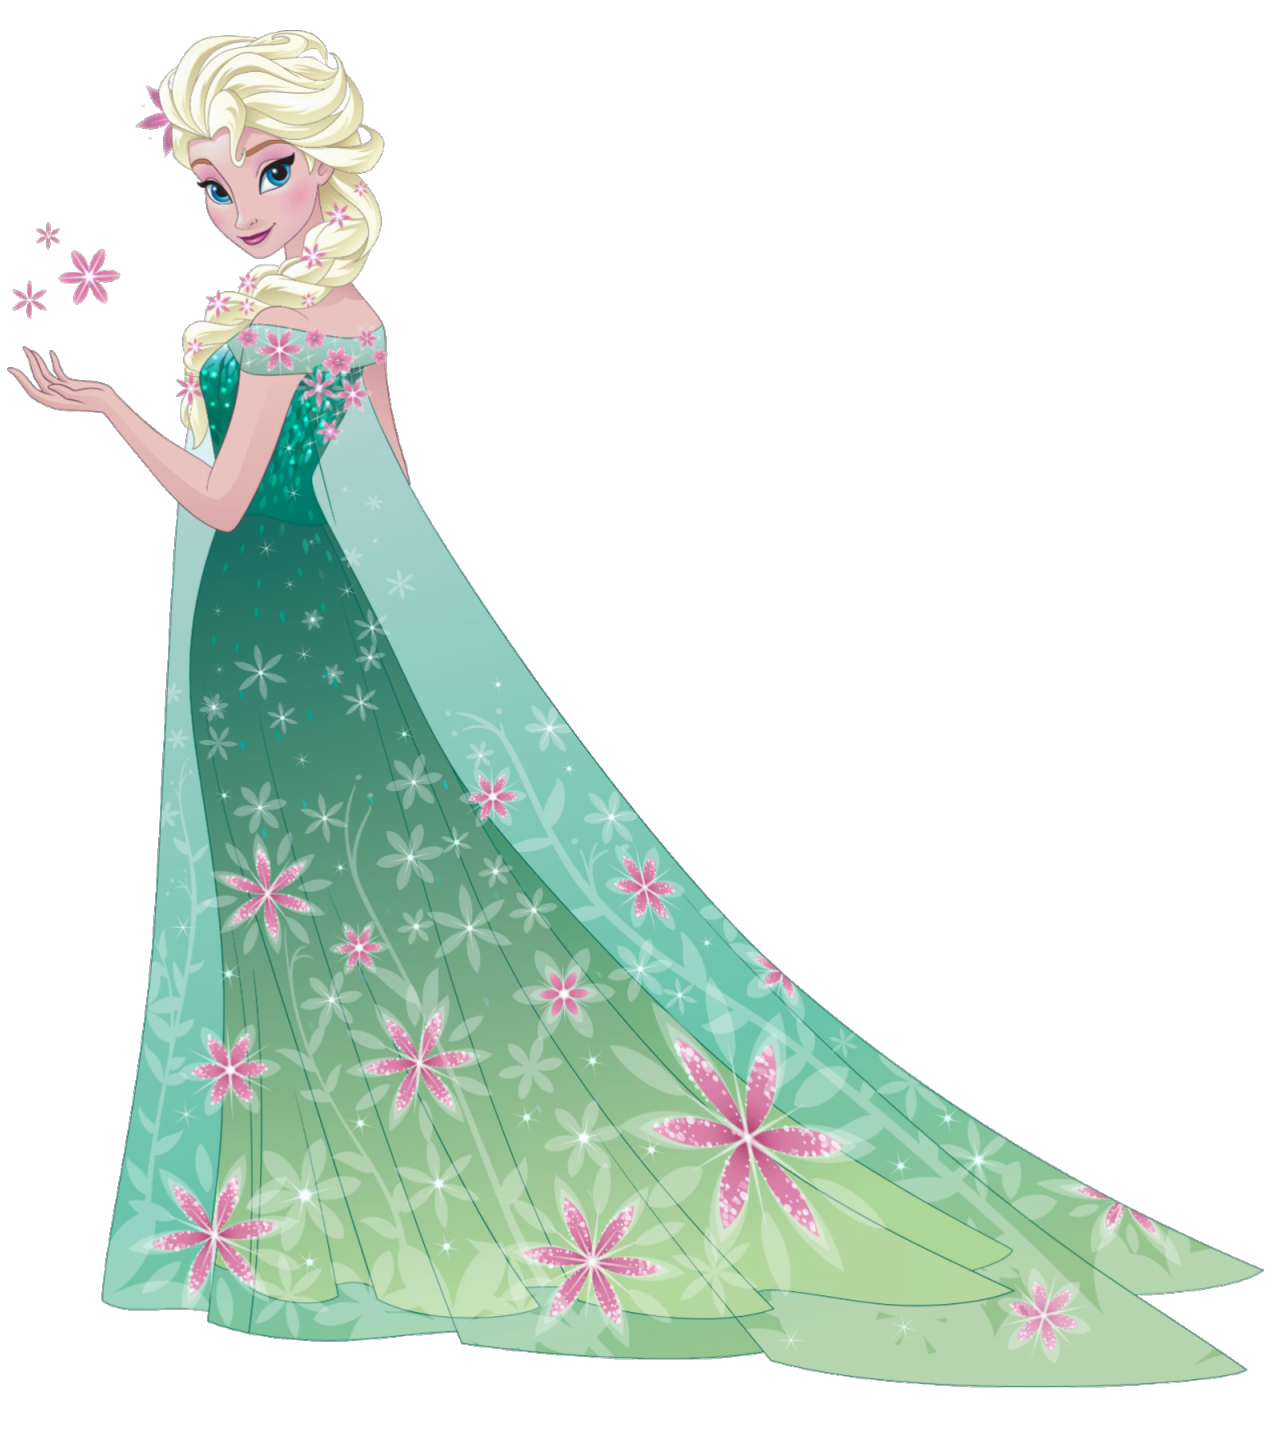 Disney frozen christmas clipart royalty free library Image - Elsafever2.png | Disney Wiki | FANDOM powered by Wikia royalty free library